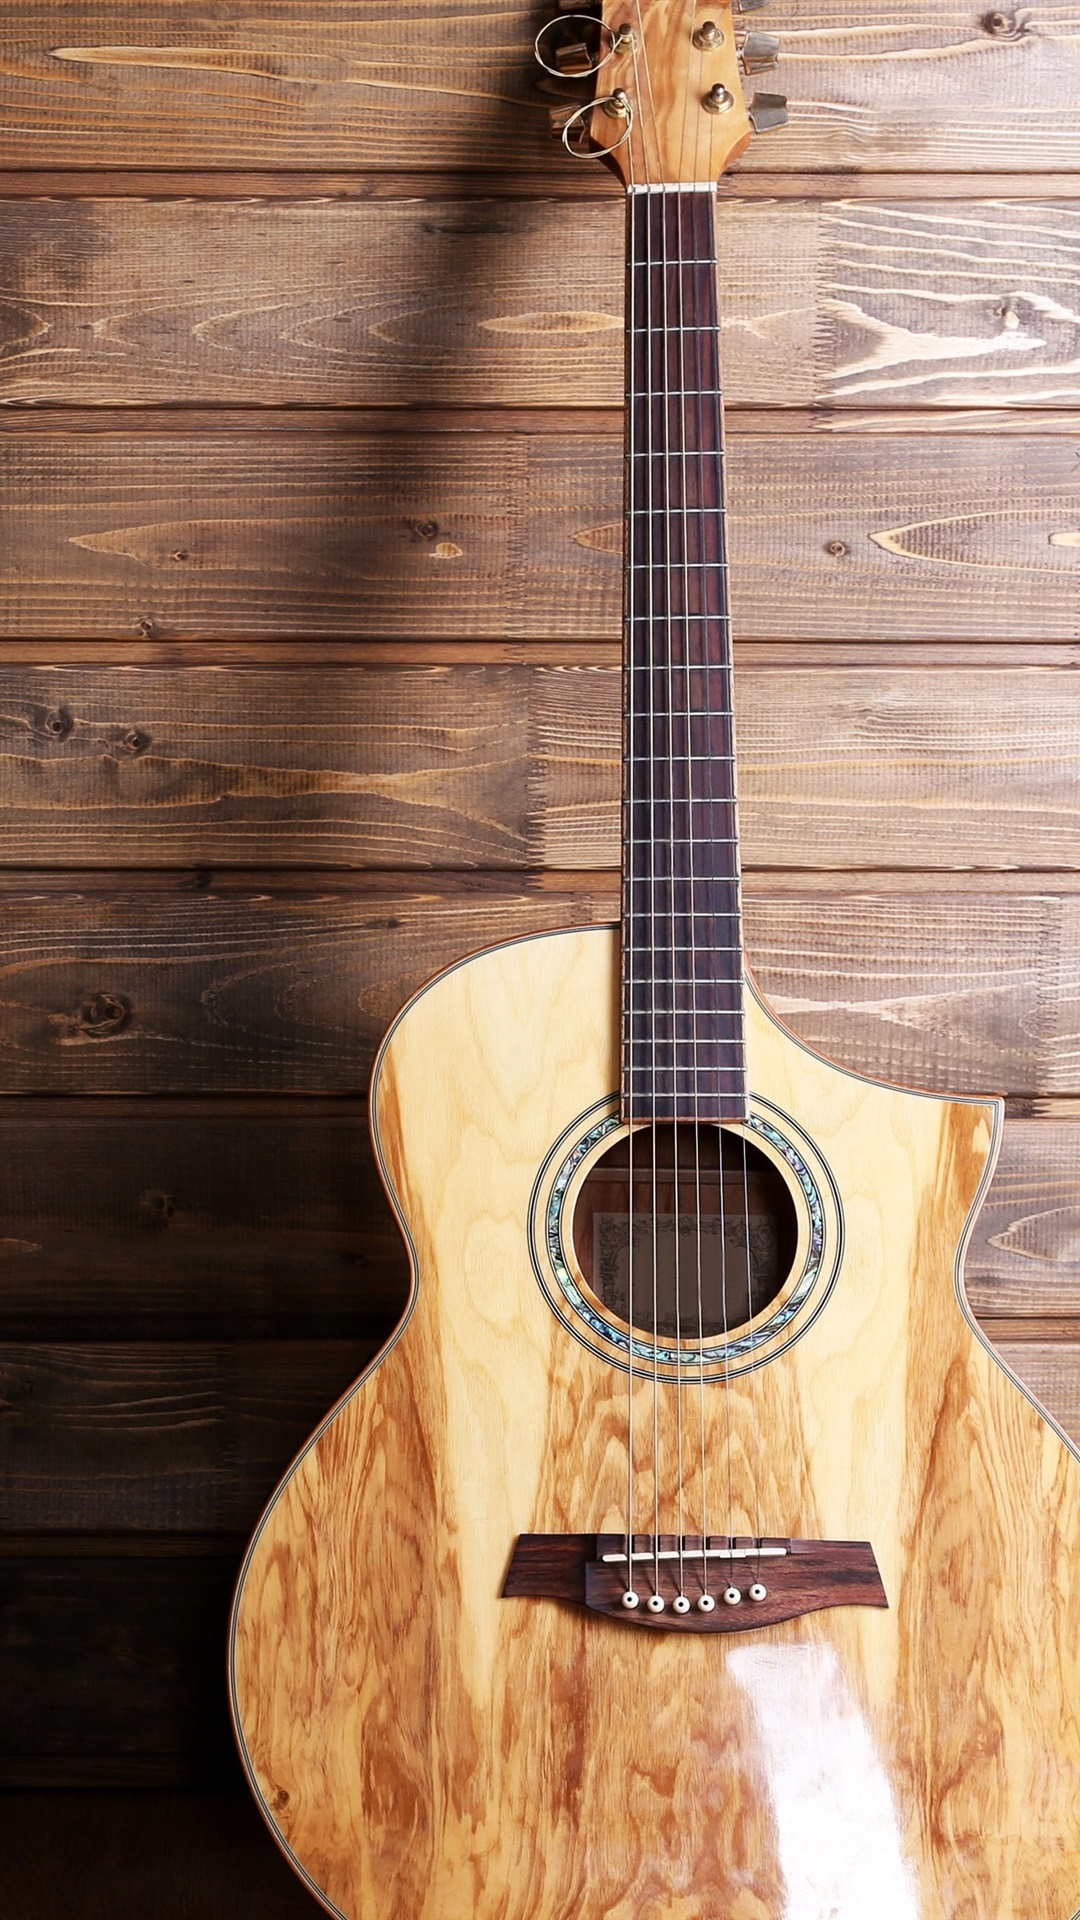 Guitar Musical Wood Background 1080x1920 Iphone 8 7 6 6s